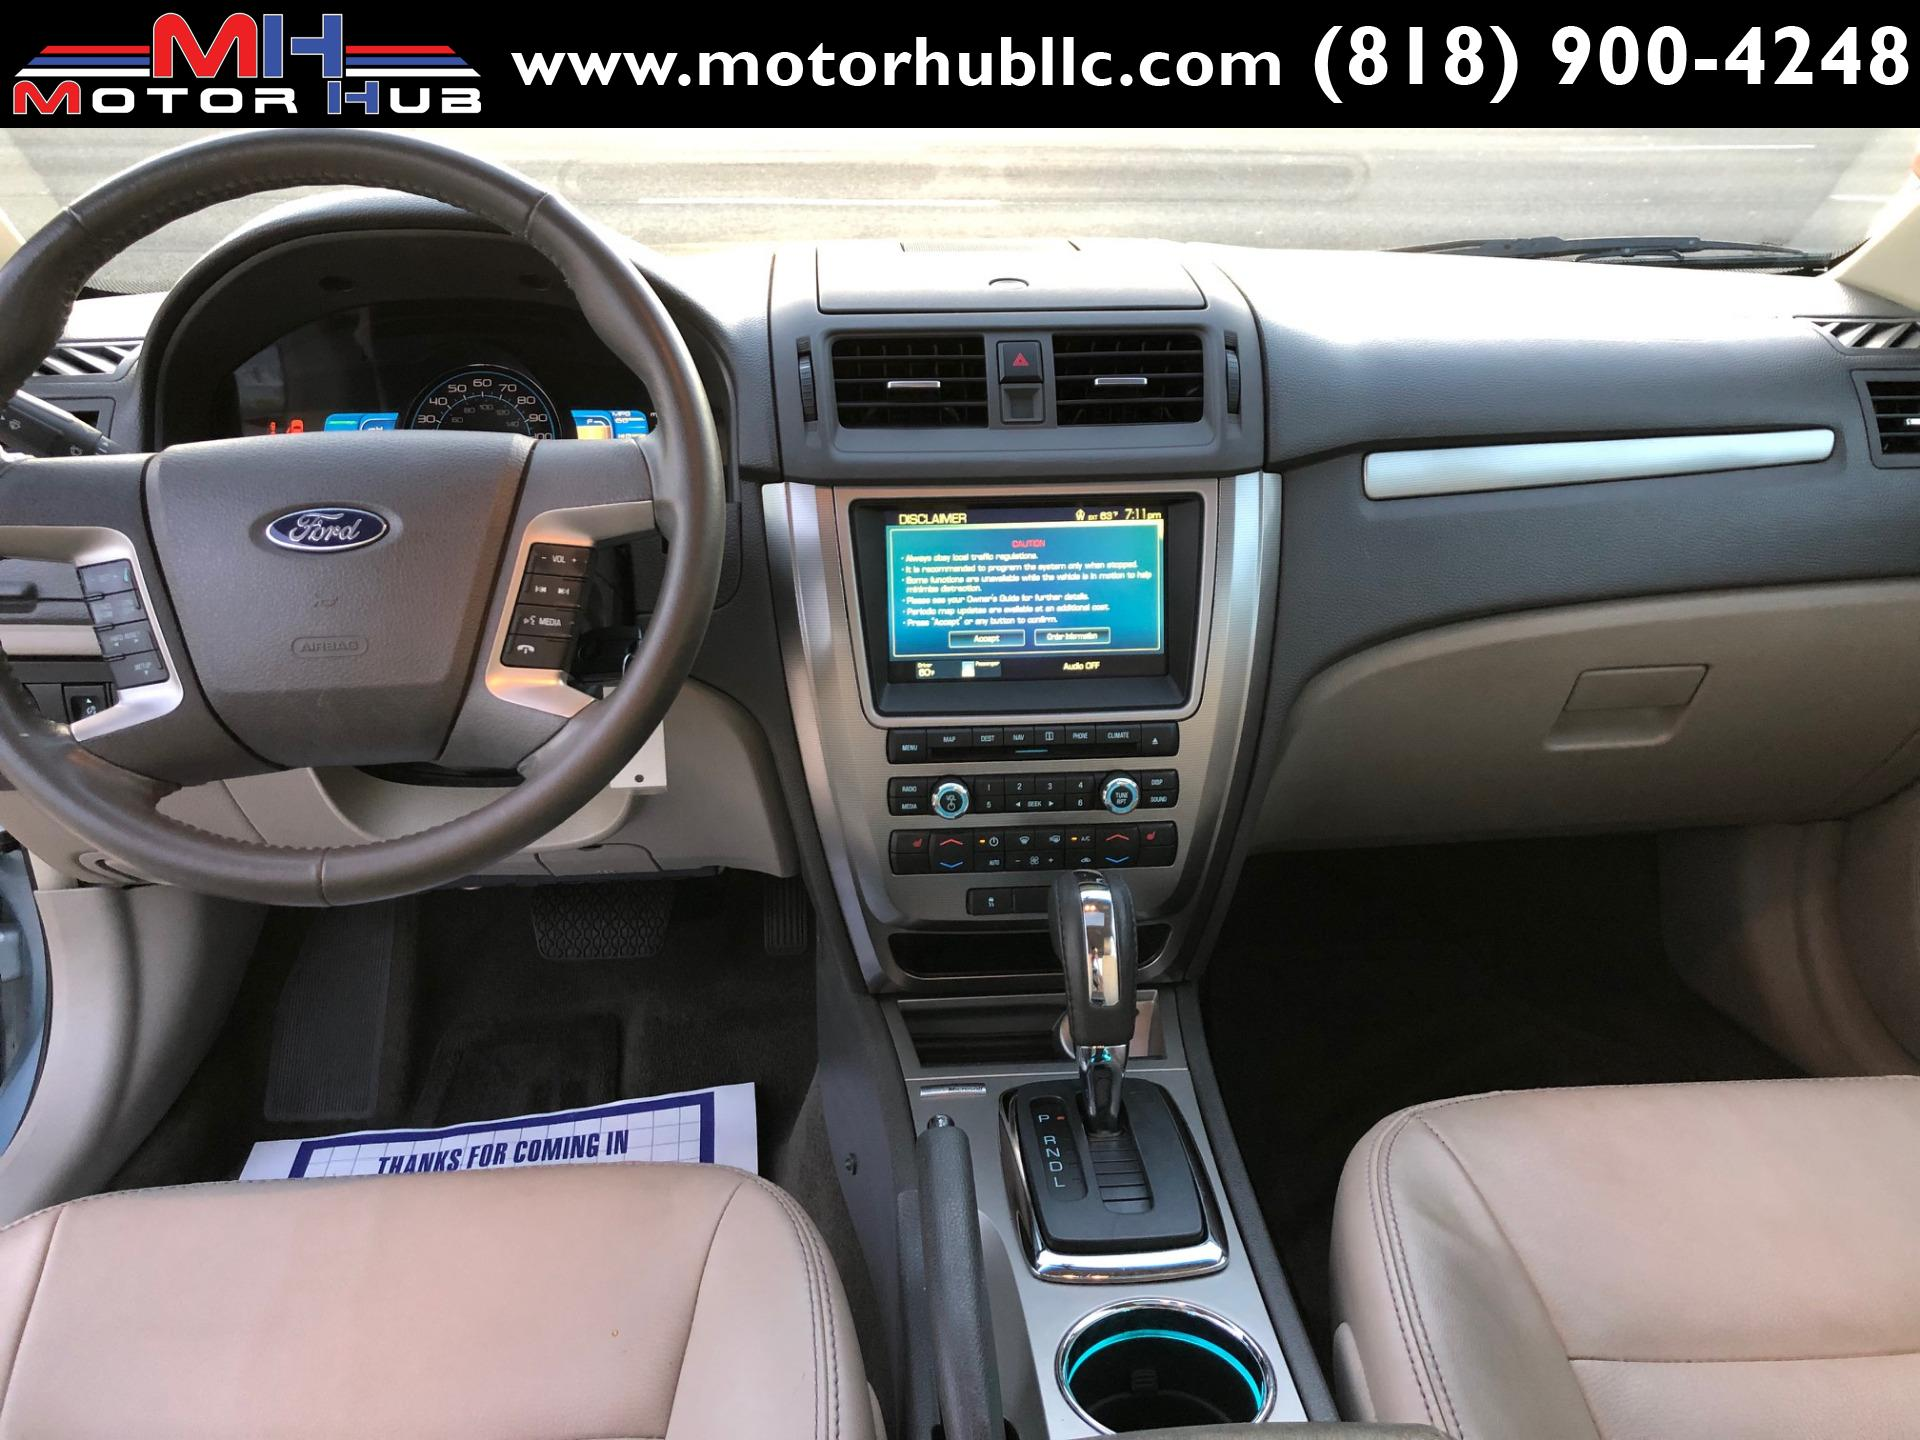 2010 Ford Fusion Hybrid Stock 328881 For Sale Near Van Nuys Ca Ca Ford Dealer